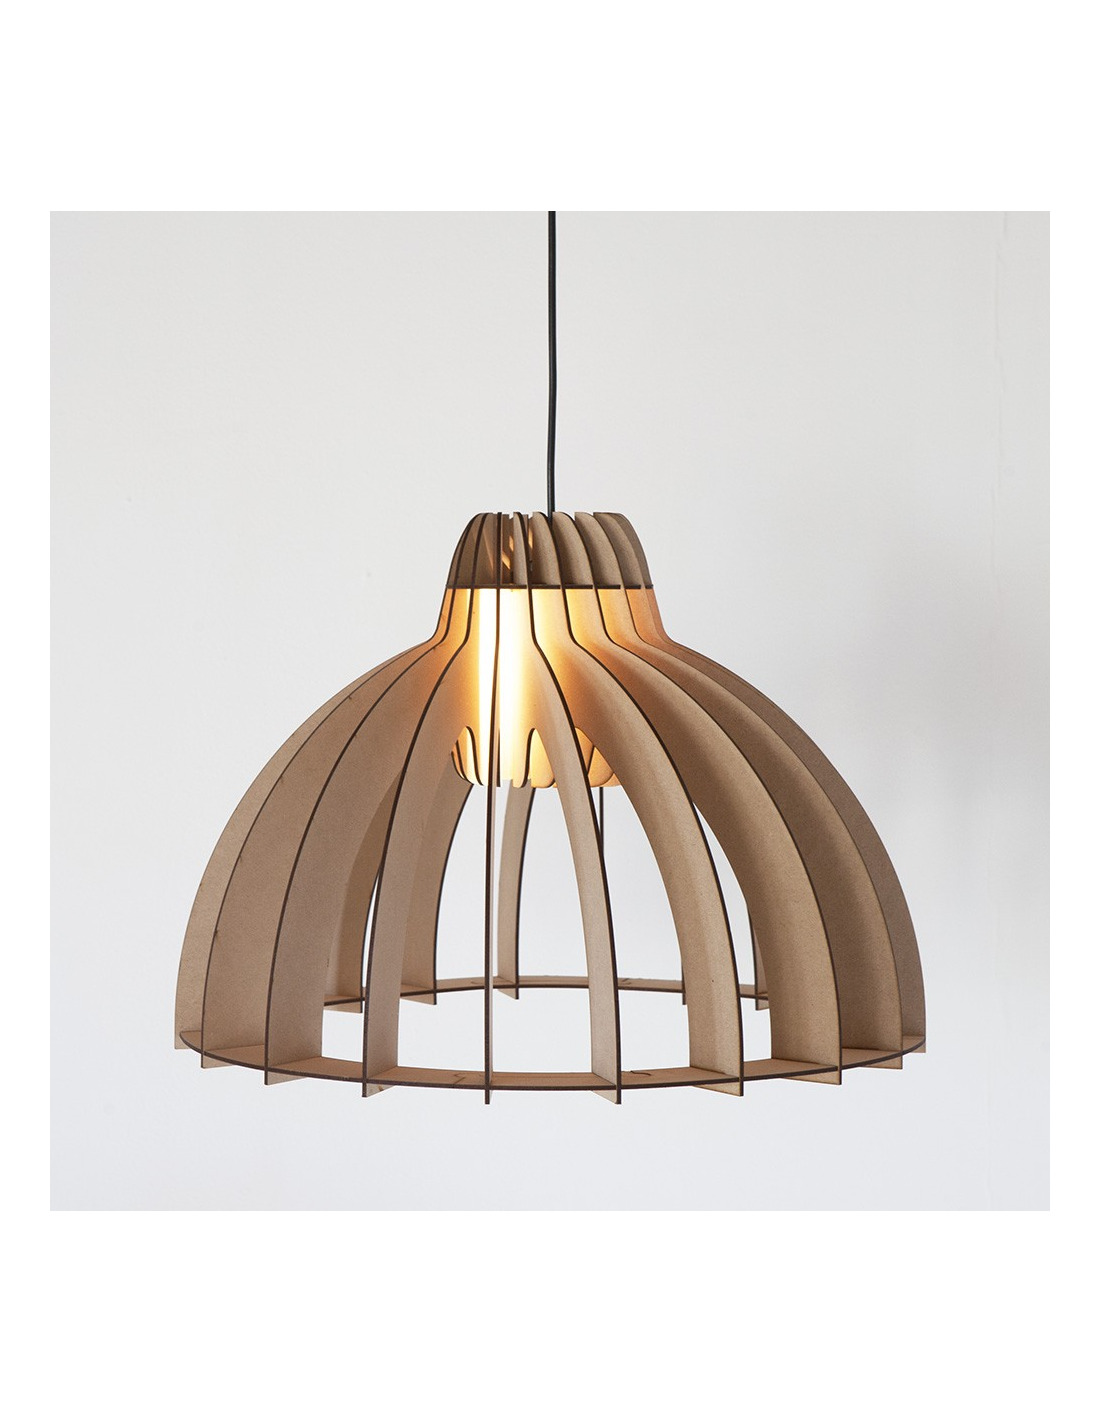 Suspension en bois granny smith d coup au laser au design for Suspension bois